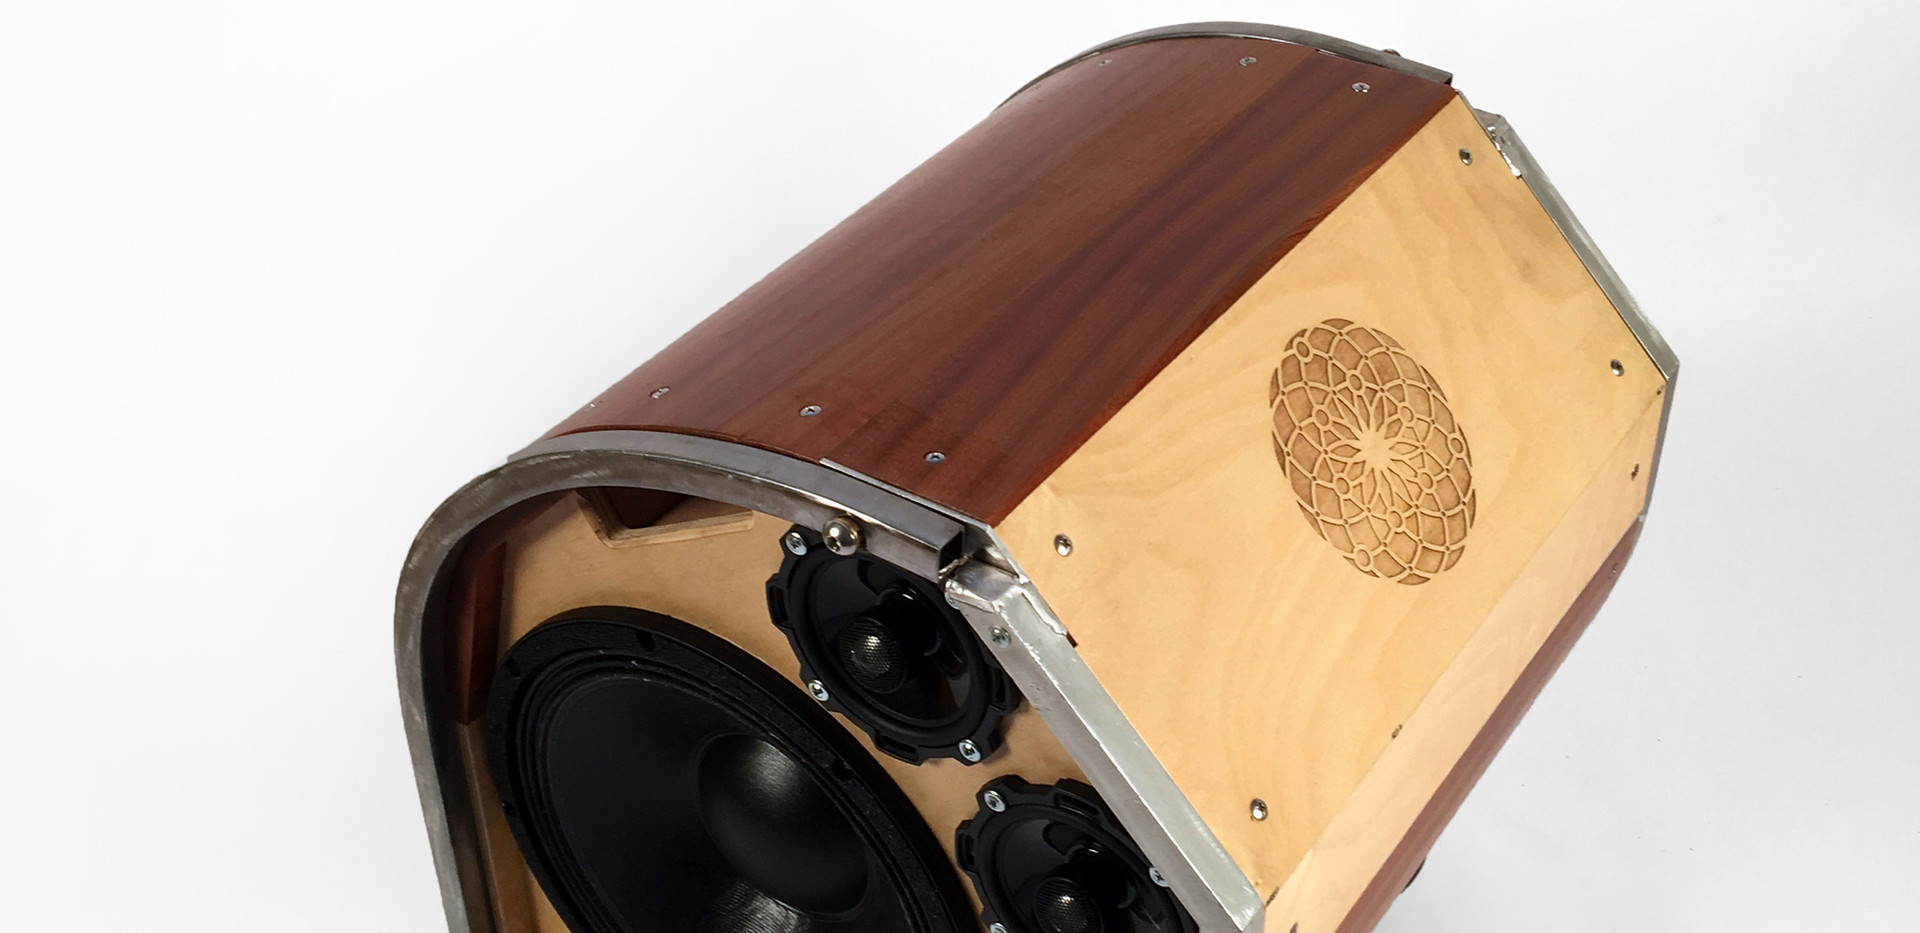 Seed Sound System